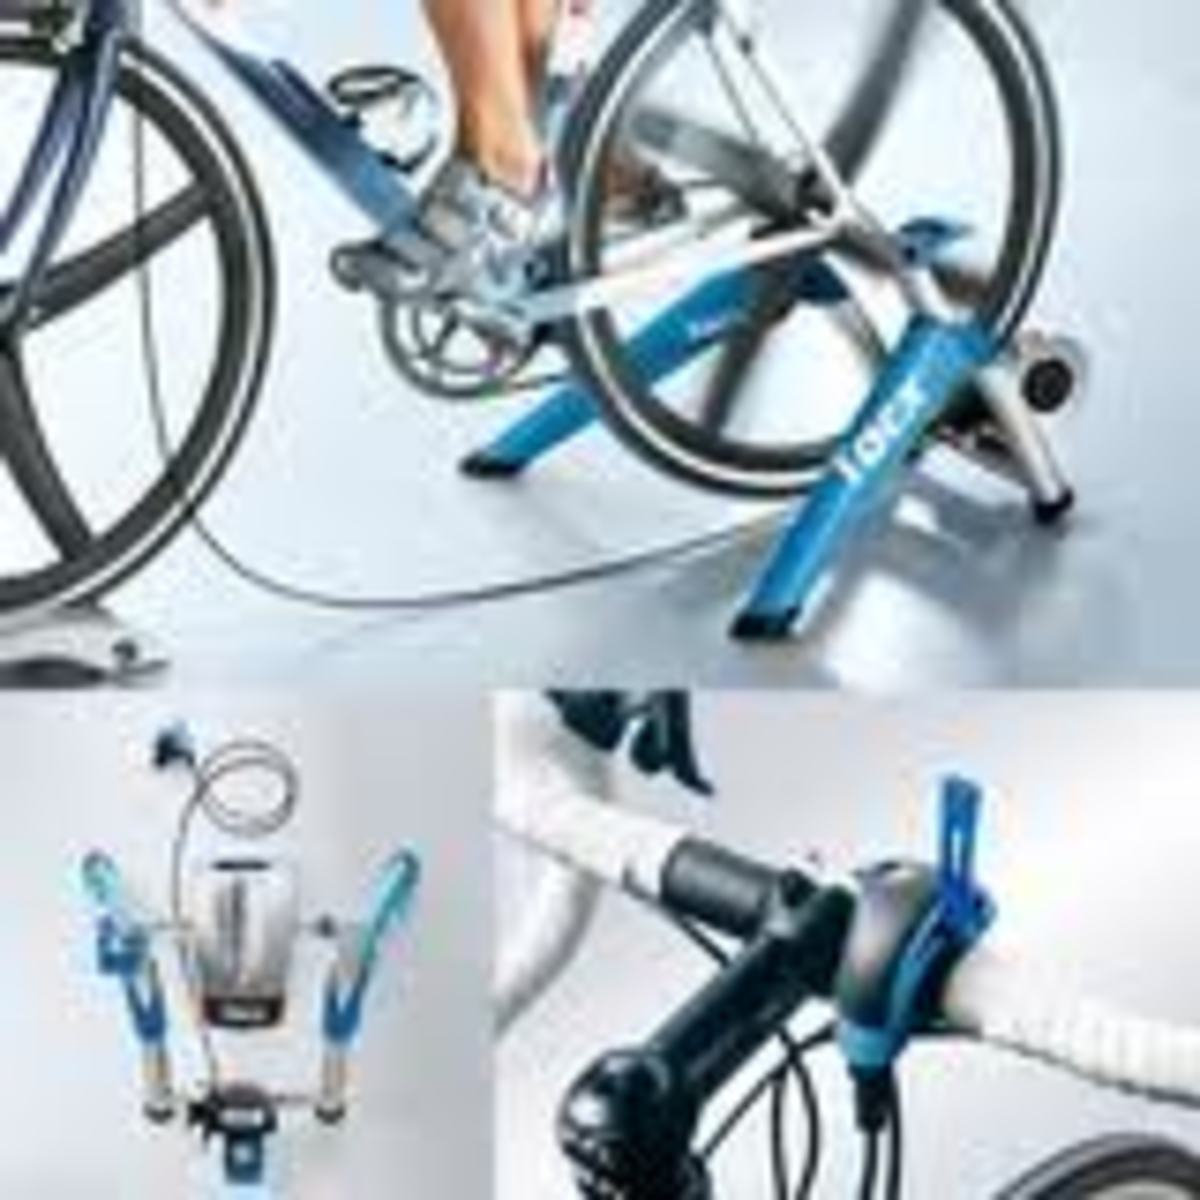 The Tacx Satori Indoor Trainer